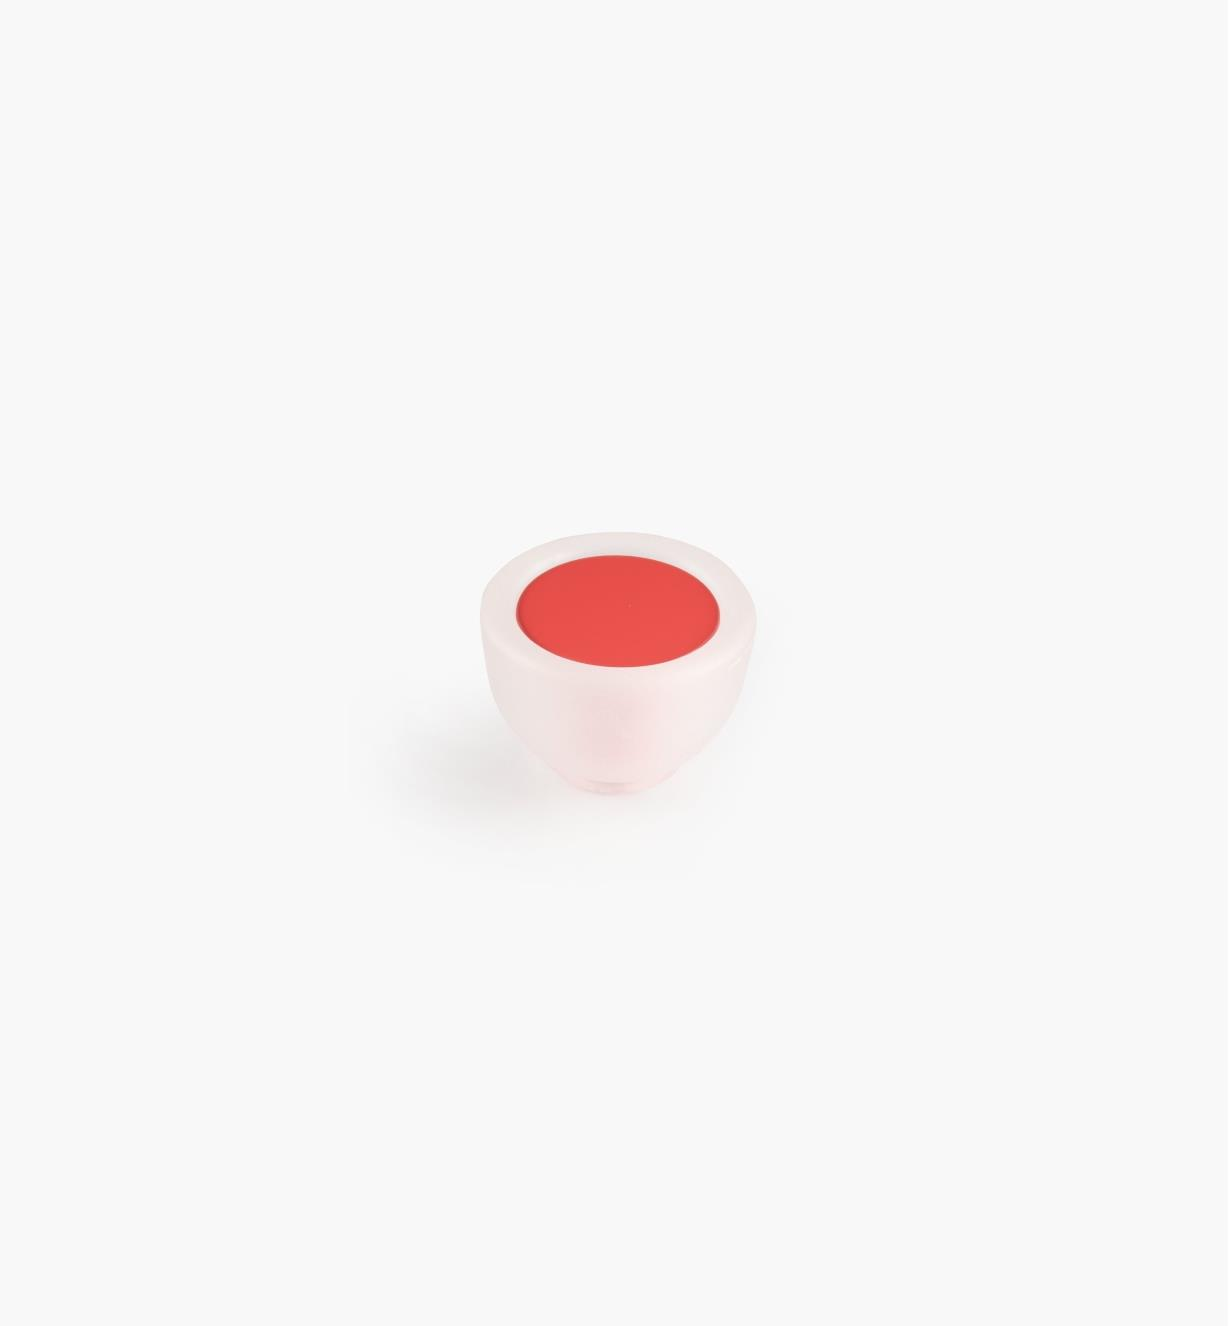 00W5430 - Bouton rond, 35mm, série Bungee, rouge